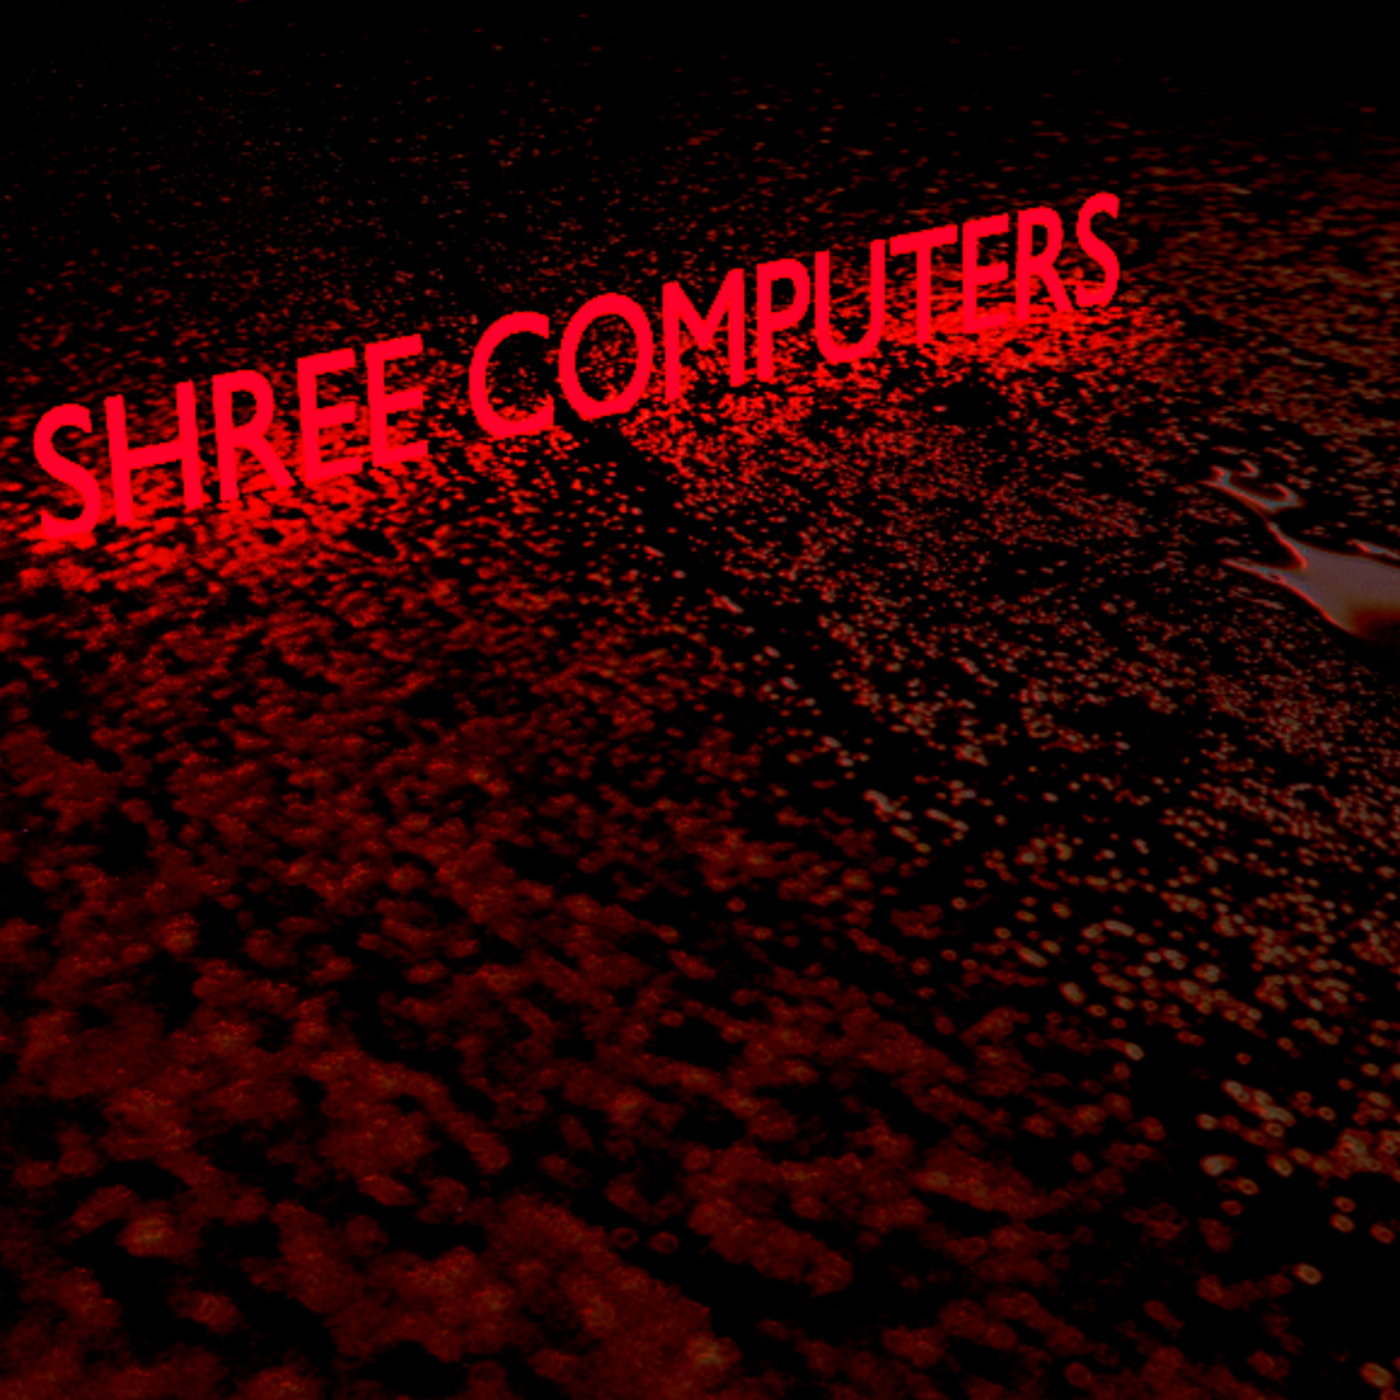 textures With Neon Text